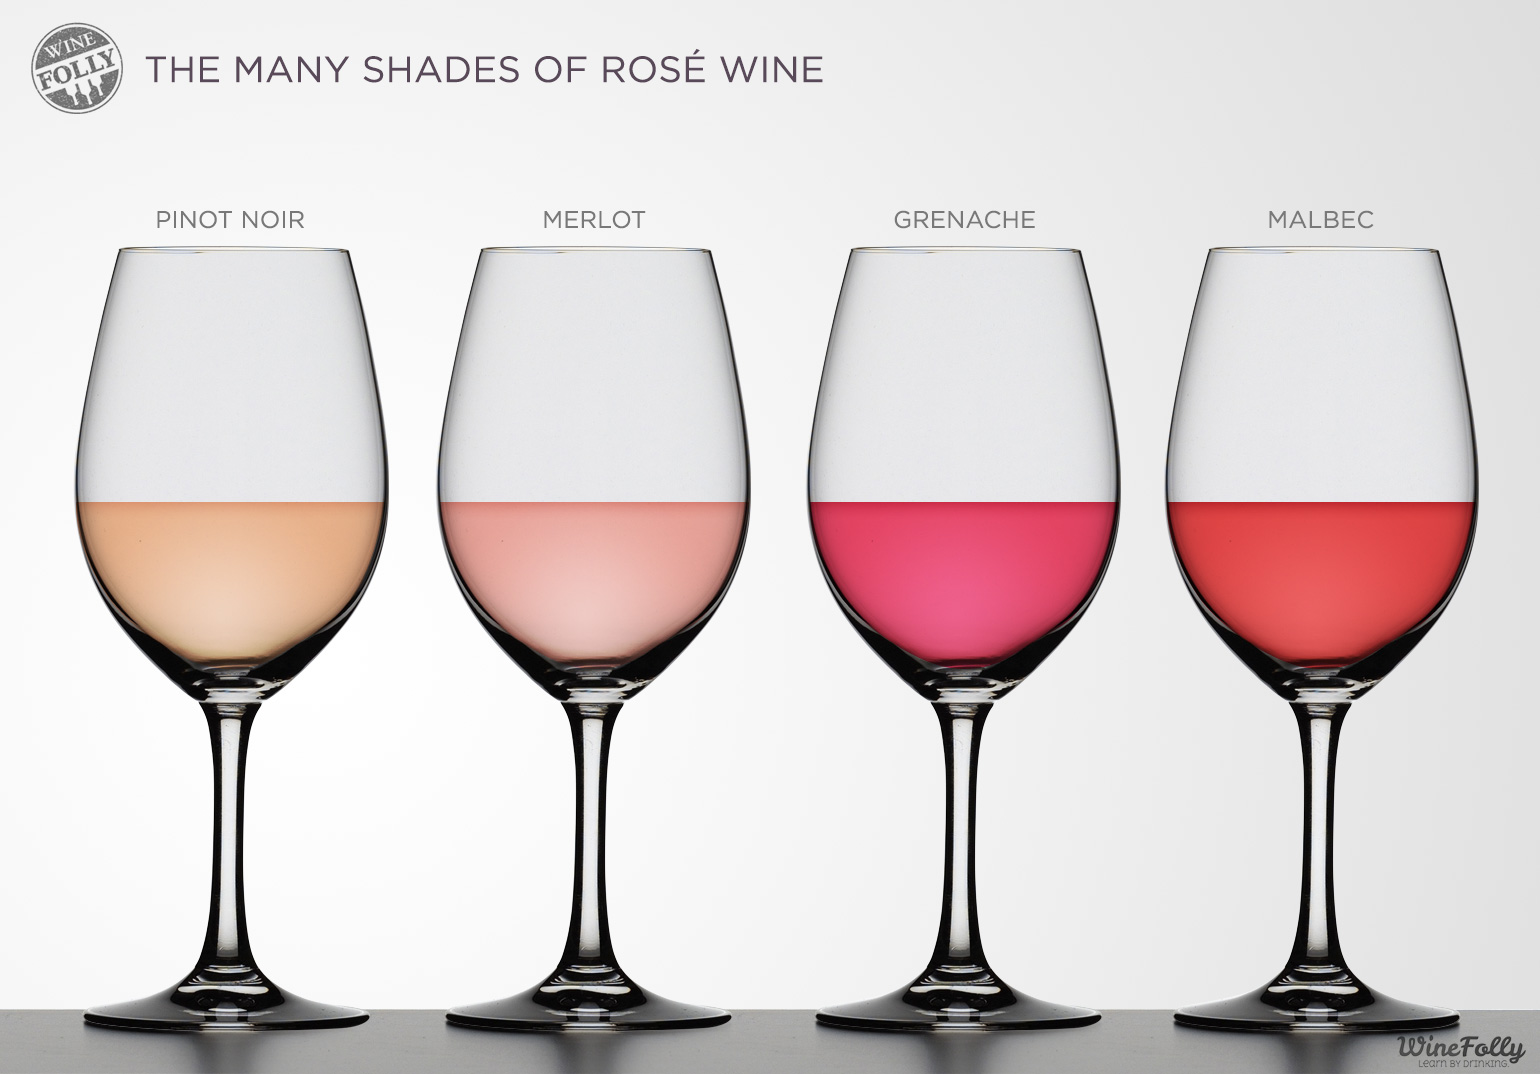 The Many Shades of Rose wine in a glass